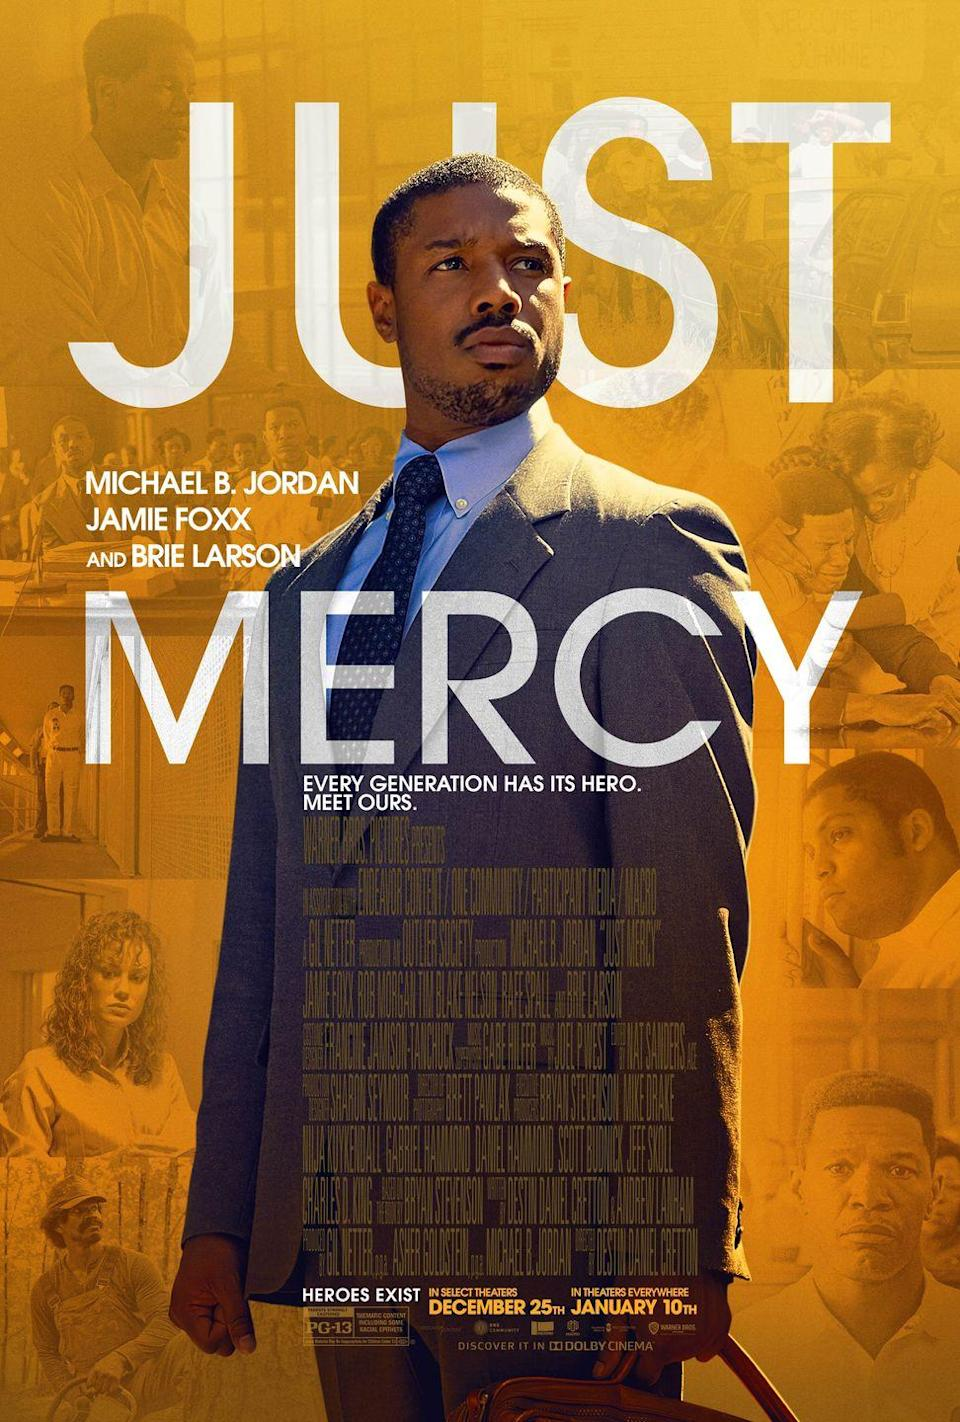 """<p><a class=""""link rapid-noclick-resp"""" href=""""https://www.amazon.com/Just-Mercy-Michael-B-Jordan/dp/B082YKN1M1/ref=sr_1_2?dchild=1&keywords=just+mercy&qid=1614184576&sr=8-2&tag=syn-yahoo-20&ascsubtag=%5Bartid%7C10067.g.15907978%5Bsrc%7Cyahoo-us"""" rel=""""nofollow noopener"""" target=""""_blank"""" data-ylk=""""slk:Watch Now"""">Watch Now</a></p><p>Based on the eponymous memoir by <a href=""""https://www.townandcountrymag.com/society/money-and-power/a32755602/agnes-gund-summer-2020-cover-interview-bryan-stevenson-social-justice-philanthropy/"""" rel=""""nofollow noopener"""" target=""""_blank"""" data-ylk=""""slk:Bryan Stevenson"""" class=""""link rapid-noclick-resp"""">Bryan Stevenson</a>, the lawyer, social justice activist, and <a href=""""https://www.townandcountrymag.com/society/politics/a5602/bryan-stevenson-equal-justice-initiative/"""" rel=""""nofollow noopener"""" target=""""_blank"""" data-ylk=""""slk:founder of the Equal Justice Initiative"""" class=""""link rapid-noclick-resp"""">founder of the Equal Justice Initiative</a>, <em>Just Mercy</em> is about a young Stevenson who goes to Alabama to help those who can't afford proper legal representation. He meets Walter McMillian, an African-American man on death row for the murder of a white woman, which he did not commit. The film, with its A-list cast (Michael B. Jordan as Stevenson, Jamie Foxx as McMillian), depicts Stevenson's struggle with deep South racism and a problematic criminal justice system as he fights to exonerate McMillian. </p>"""